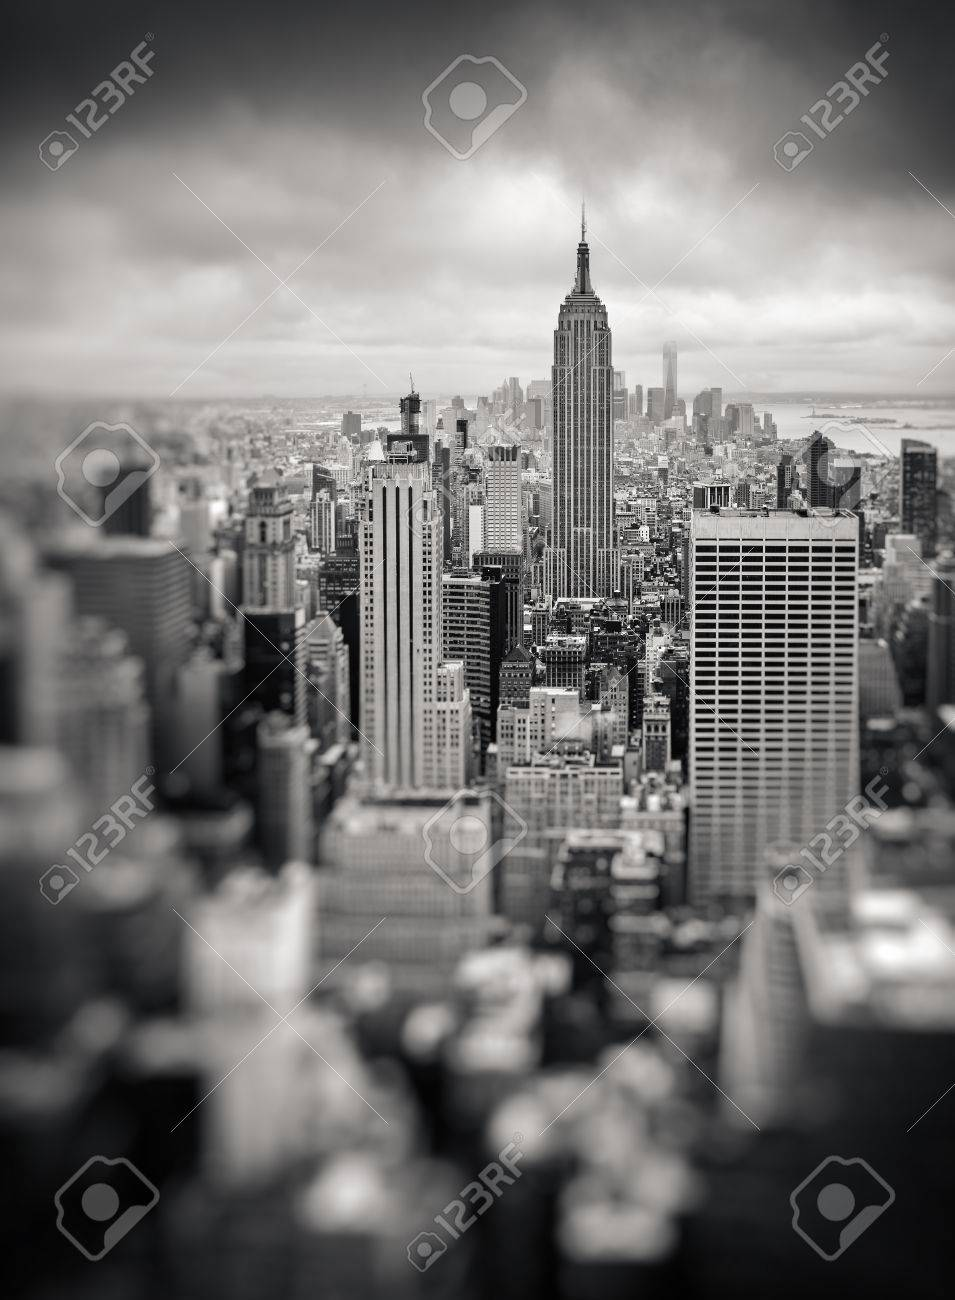 New York City Manhattan Midtown Aerial View With Skyscrapers On An Overcast Day Black And